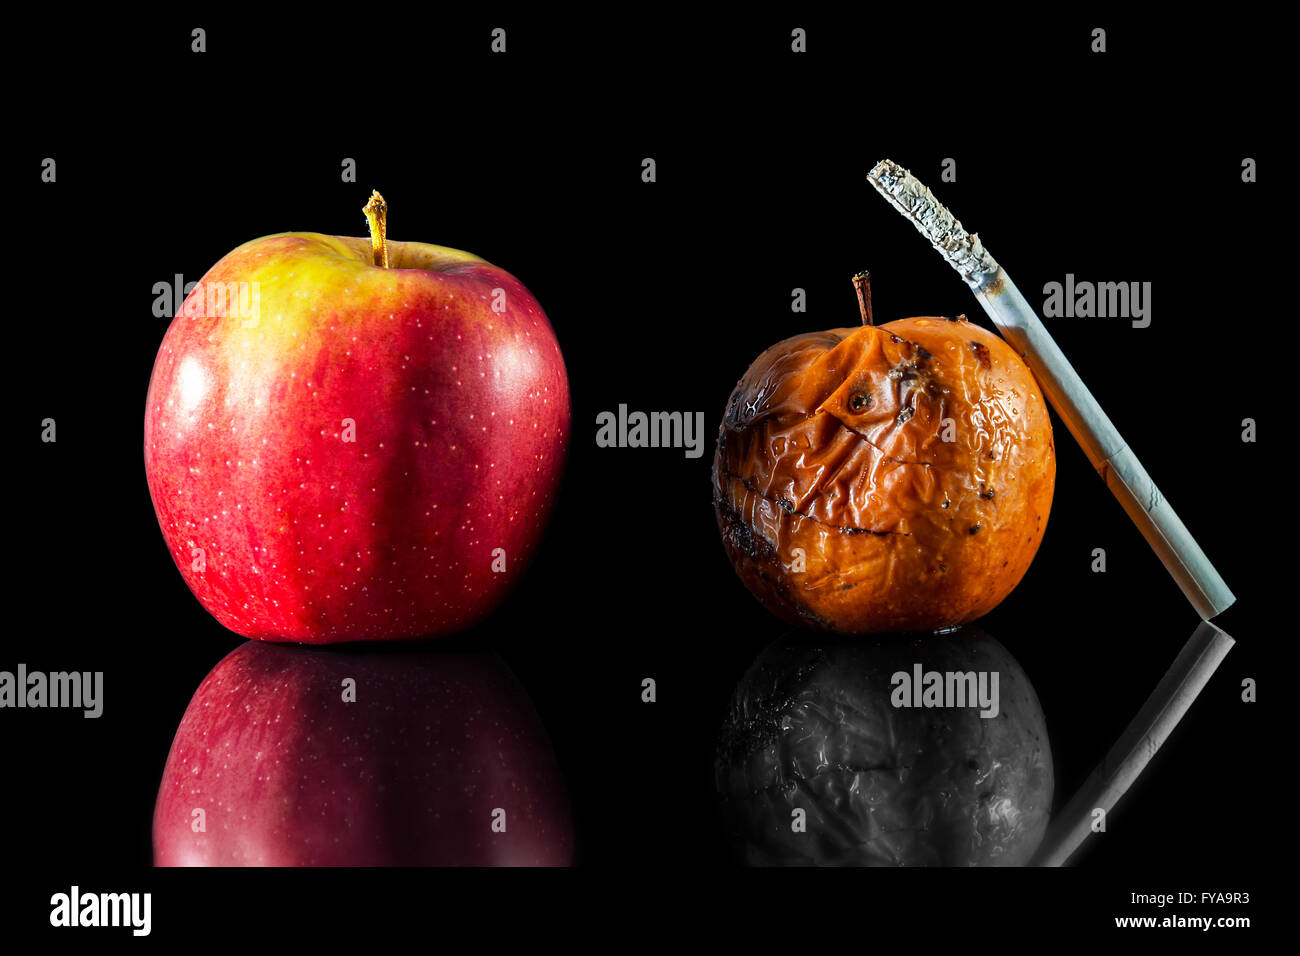 two apples and a cigarette in black background - Stock Image